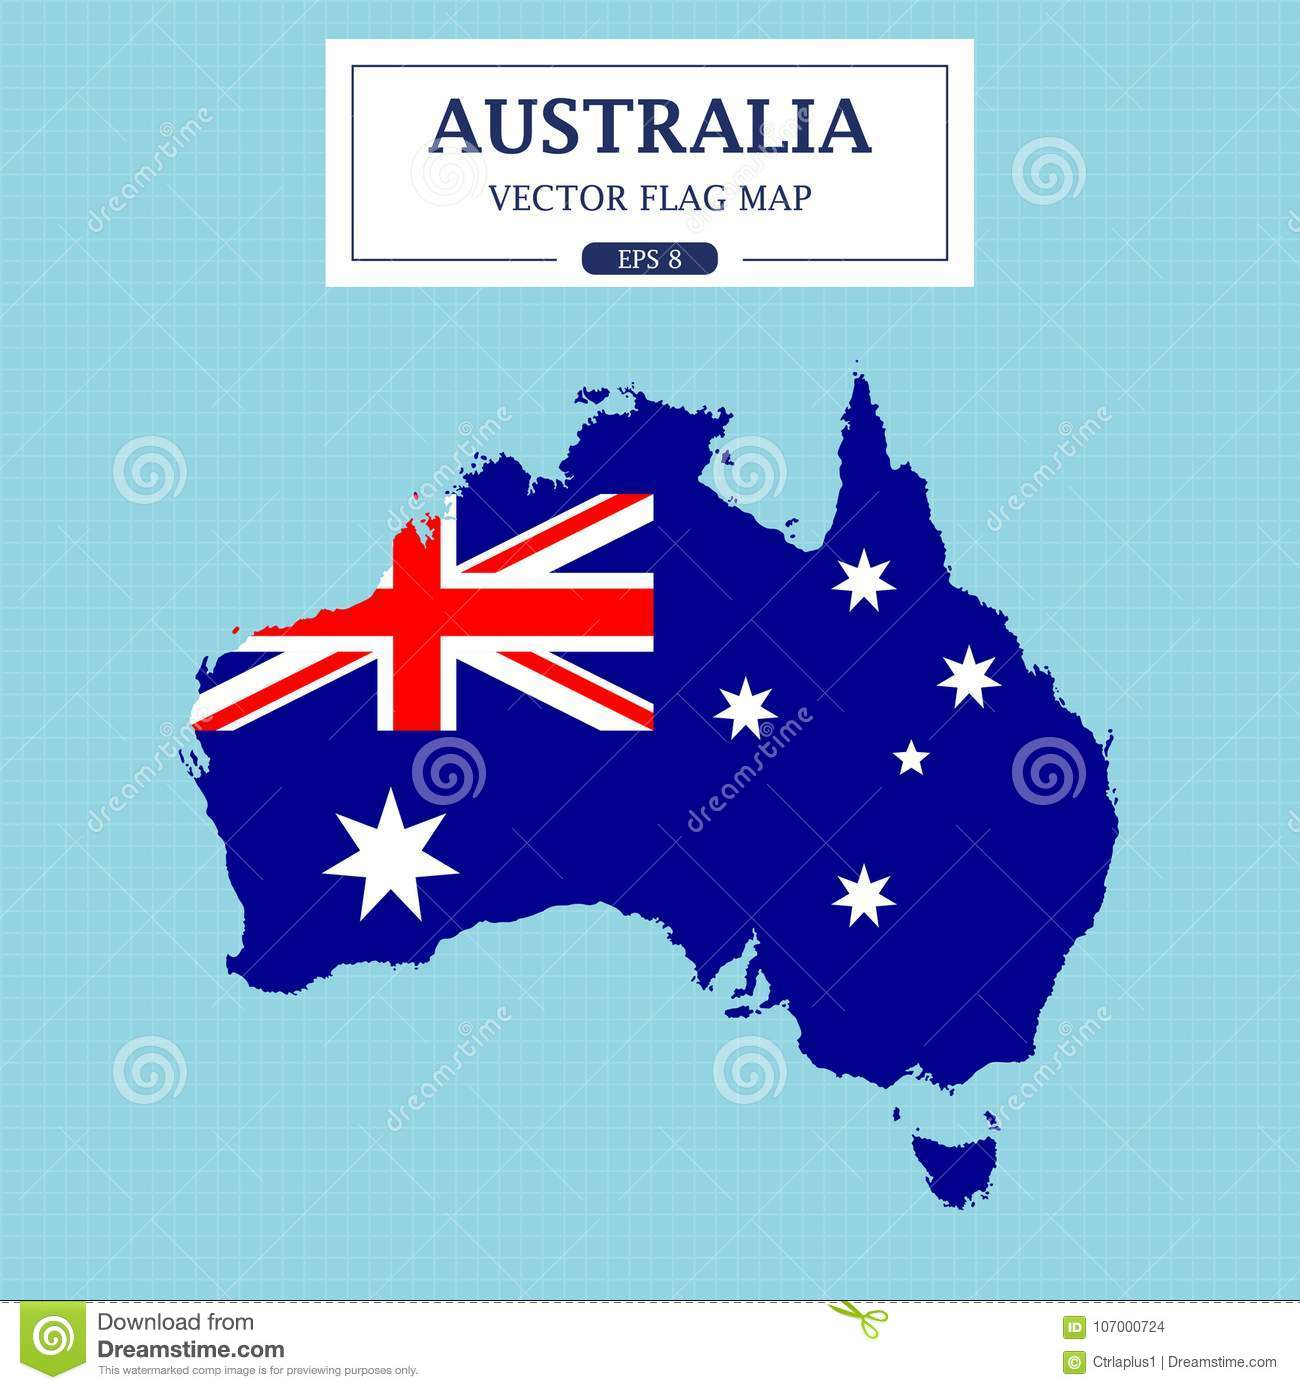 Australia Map Flag Vector High Detail Stock Vector ... on map in nicaragua, map in maryland, map in canada, map in singapore, map in denmark, map in 1700, map in java, map in india, map in cambodia, map in cancun, map in mongolia, map in mexico, map in usa, map in europe, map in china, map in sudan, map in pakistan, map in burma, map in nz, map in california,